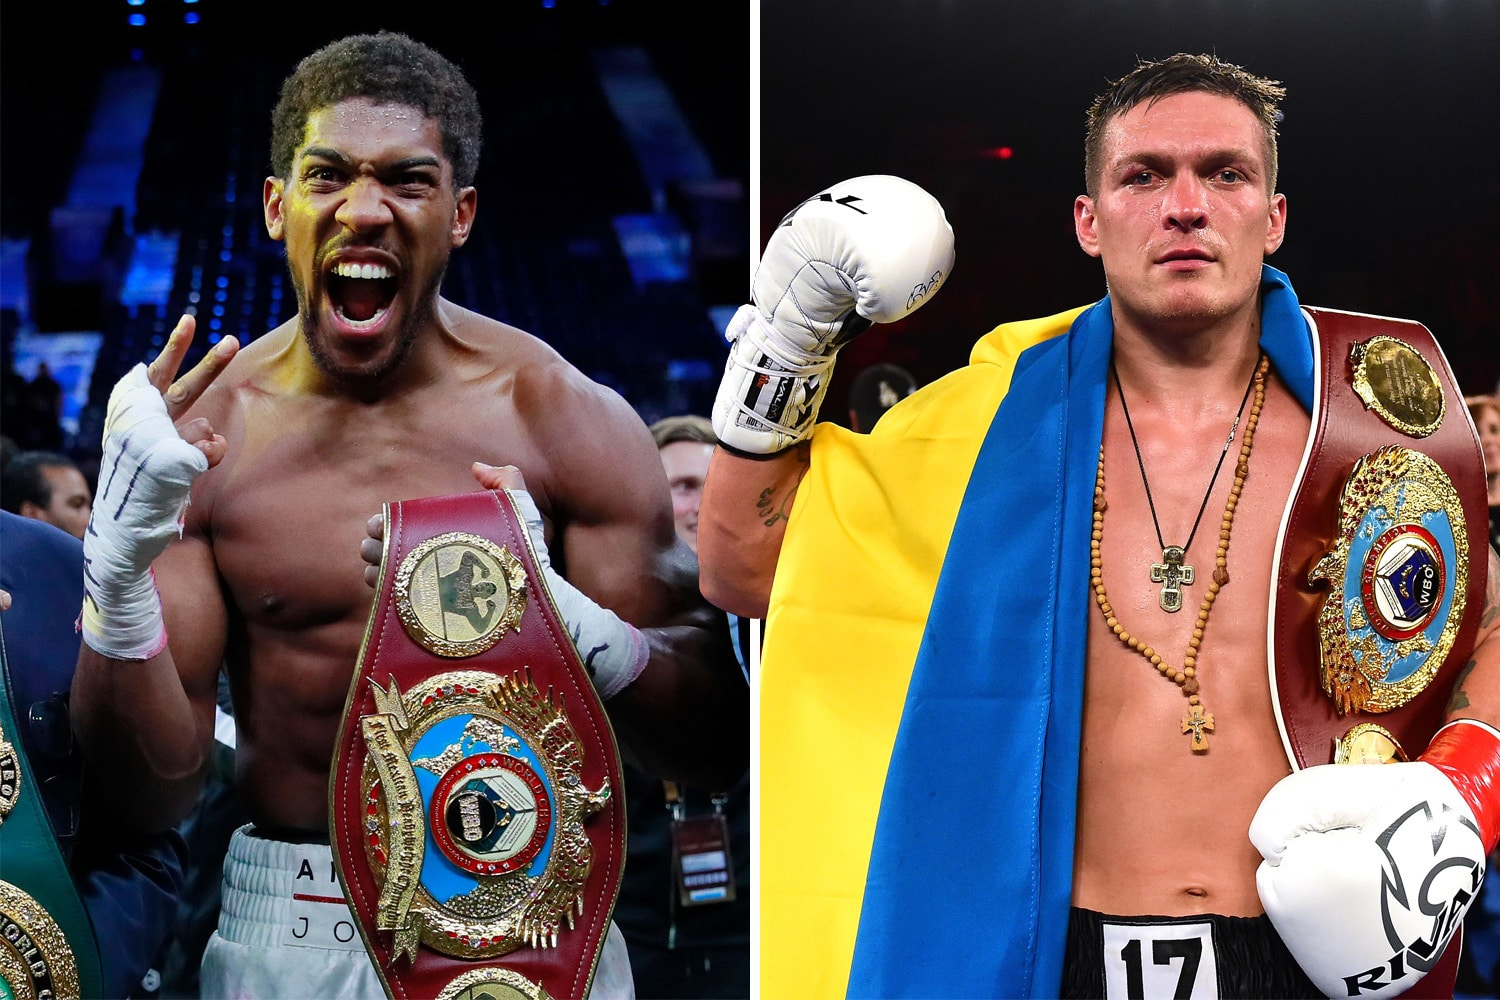 Joshua vs Usyk Title Bout Confirmed For September 25